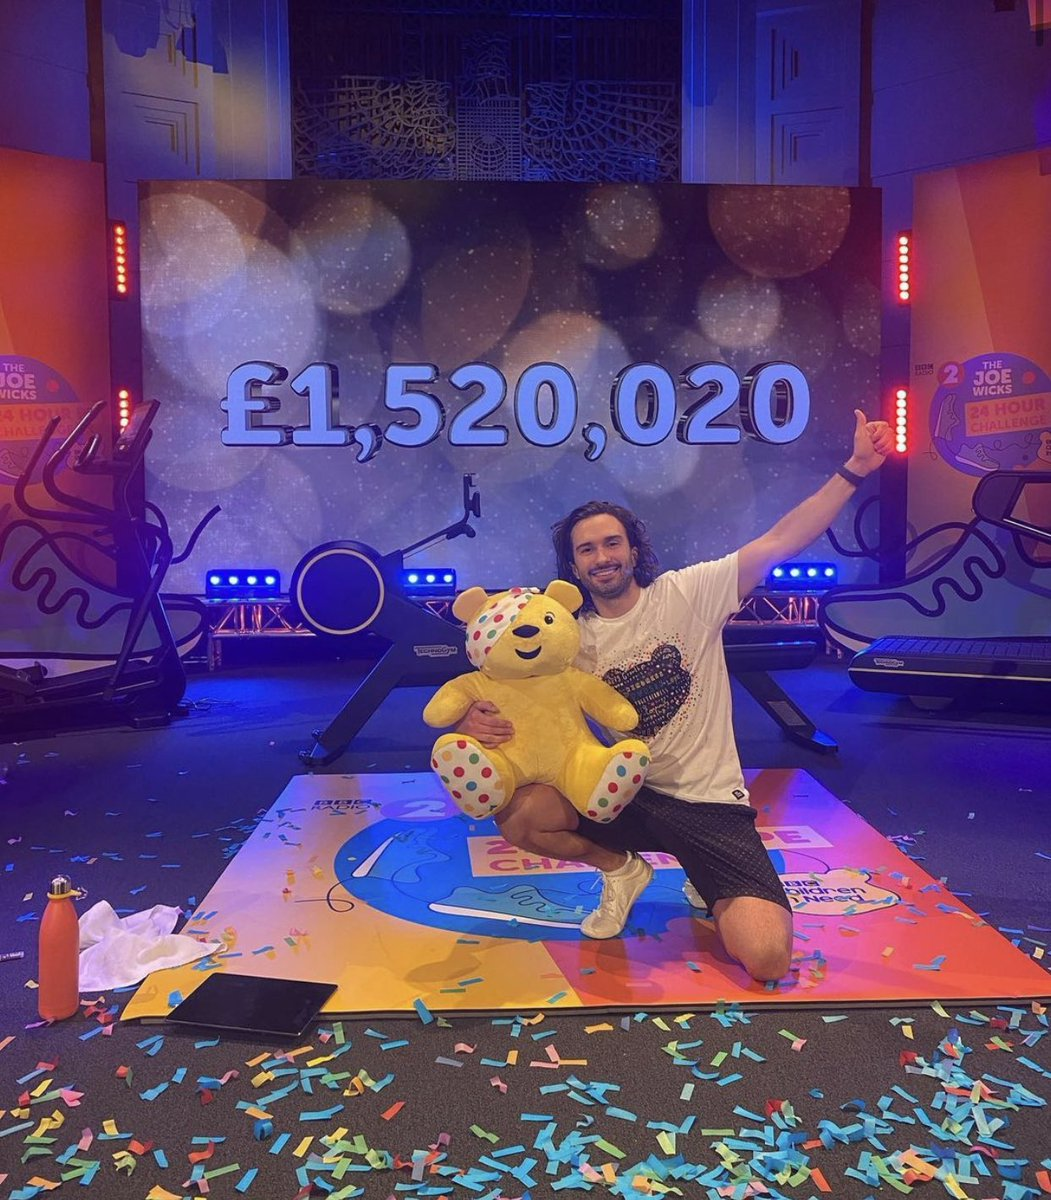 OMG we did it 🎉 What an incredible 24 hours 🥵 I'm absolutely broken but we raised an unbelievable amount of money for @BBCCiN and we're going to help so many people 💛 THANK YOU to everyone that donated or sent me a message. I could not have done this without you ❤️ @BBCRadio2